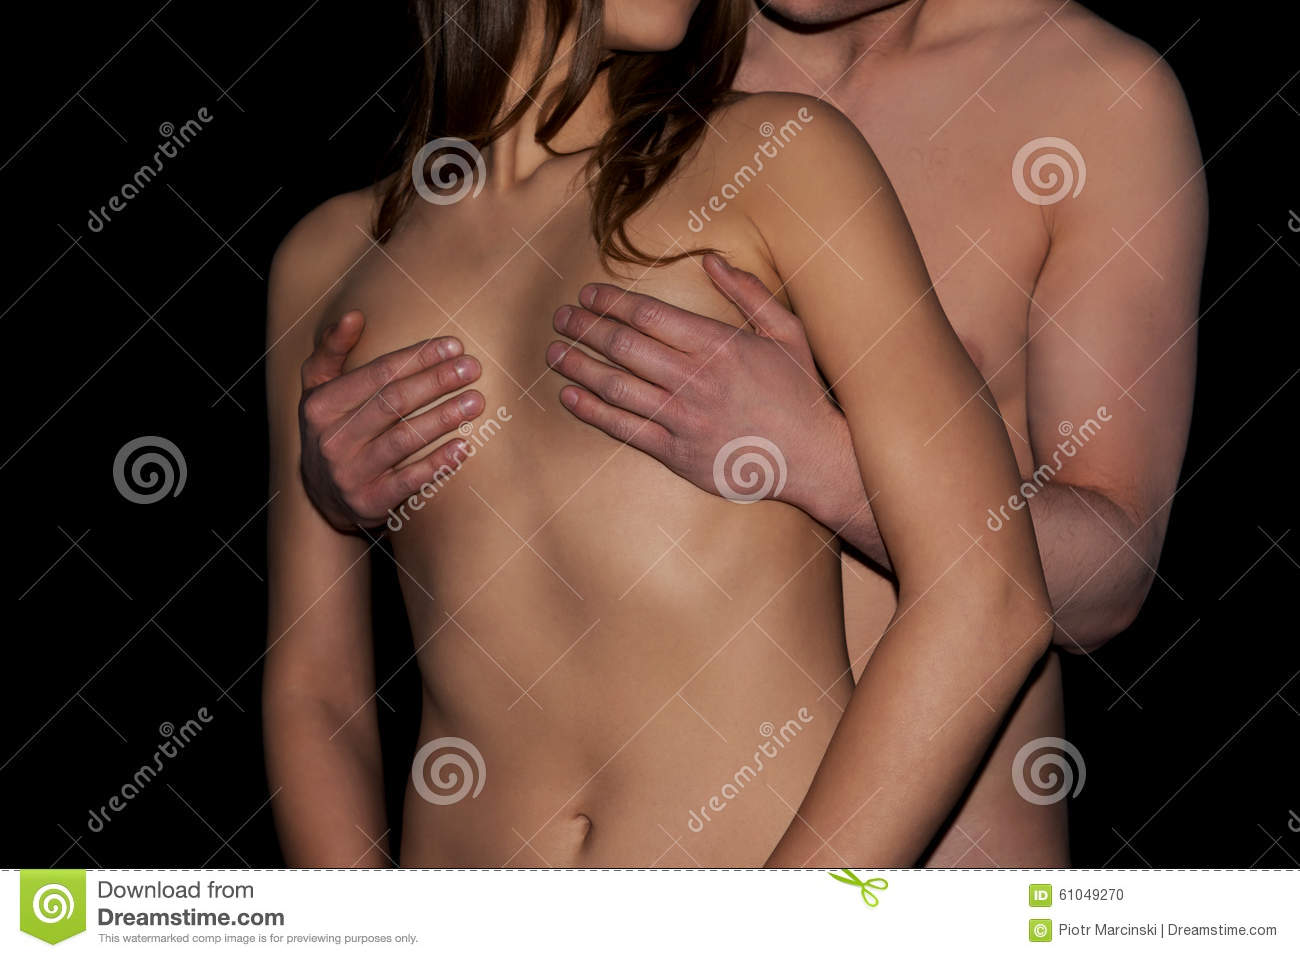 A man touches a woman s breast